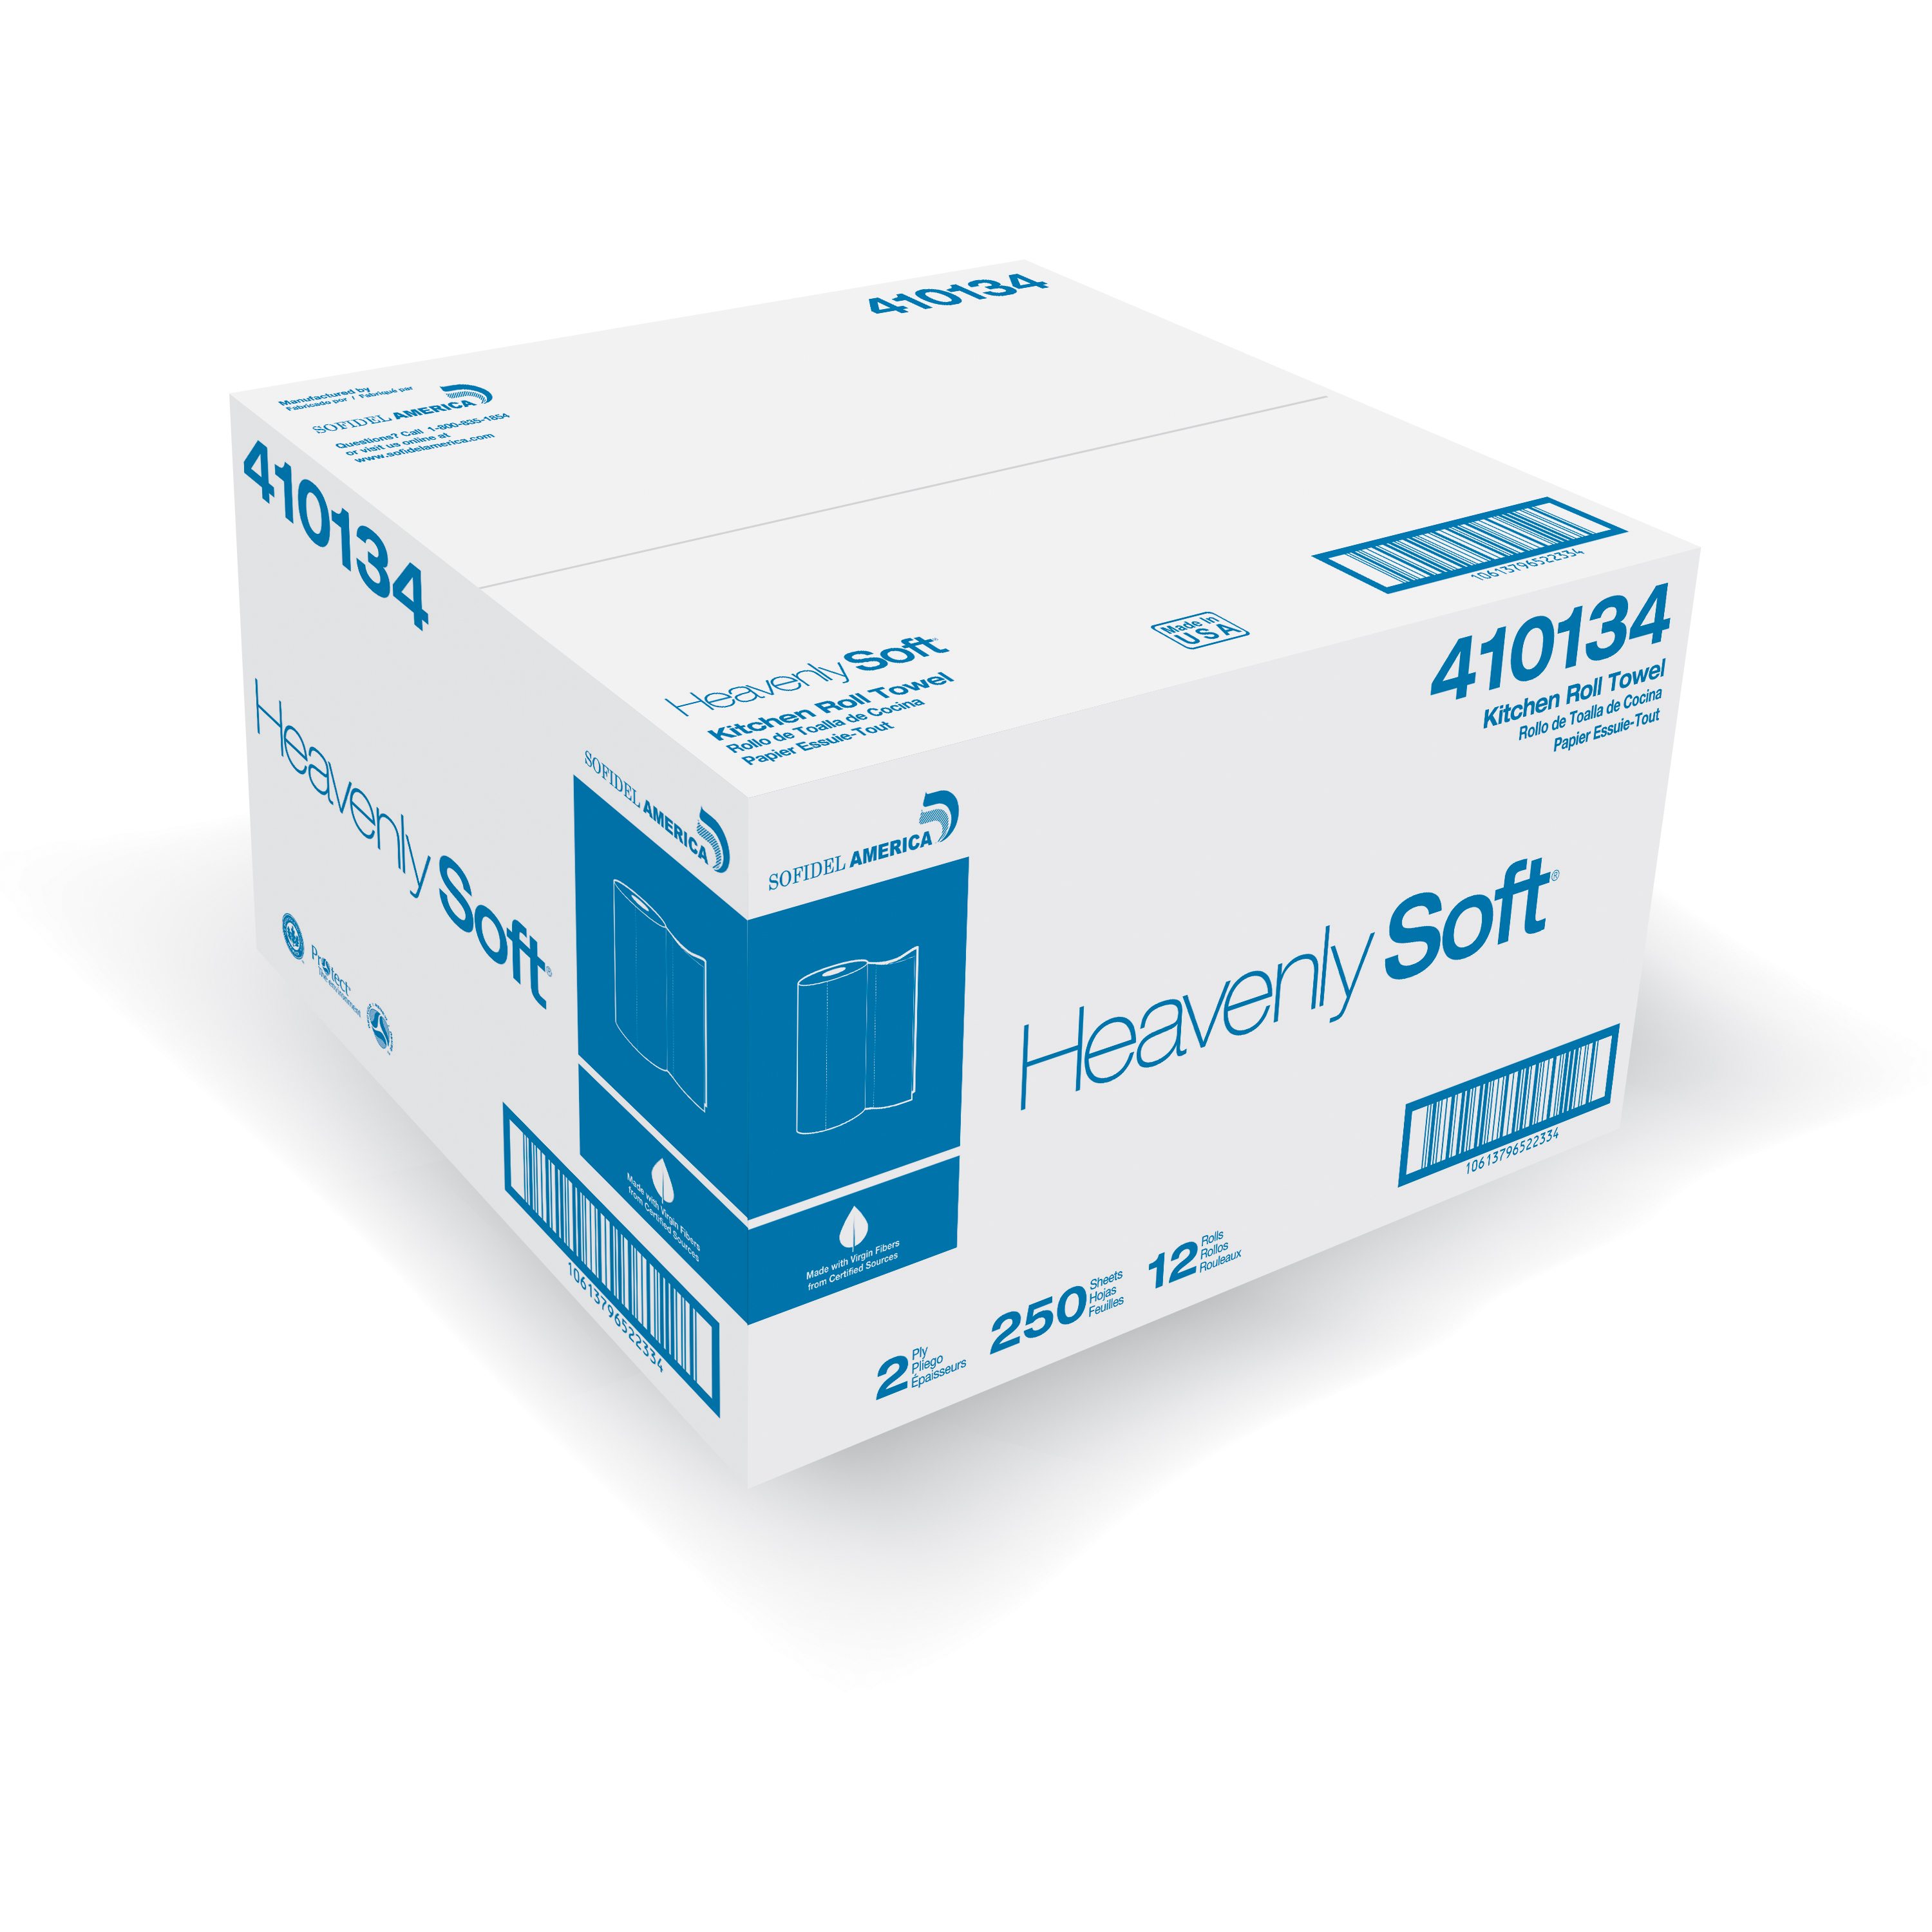 Sofidel Heavenly Soft Kitchen roll towel 2ply 8x11 12 / 250